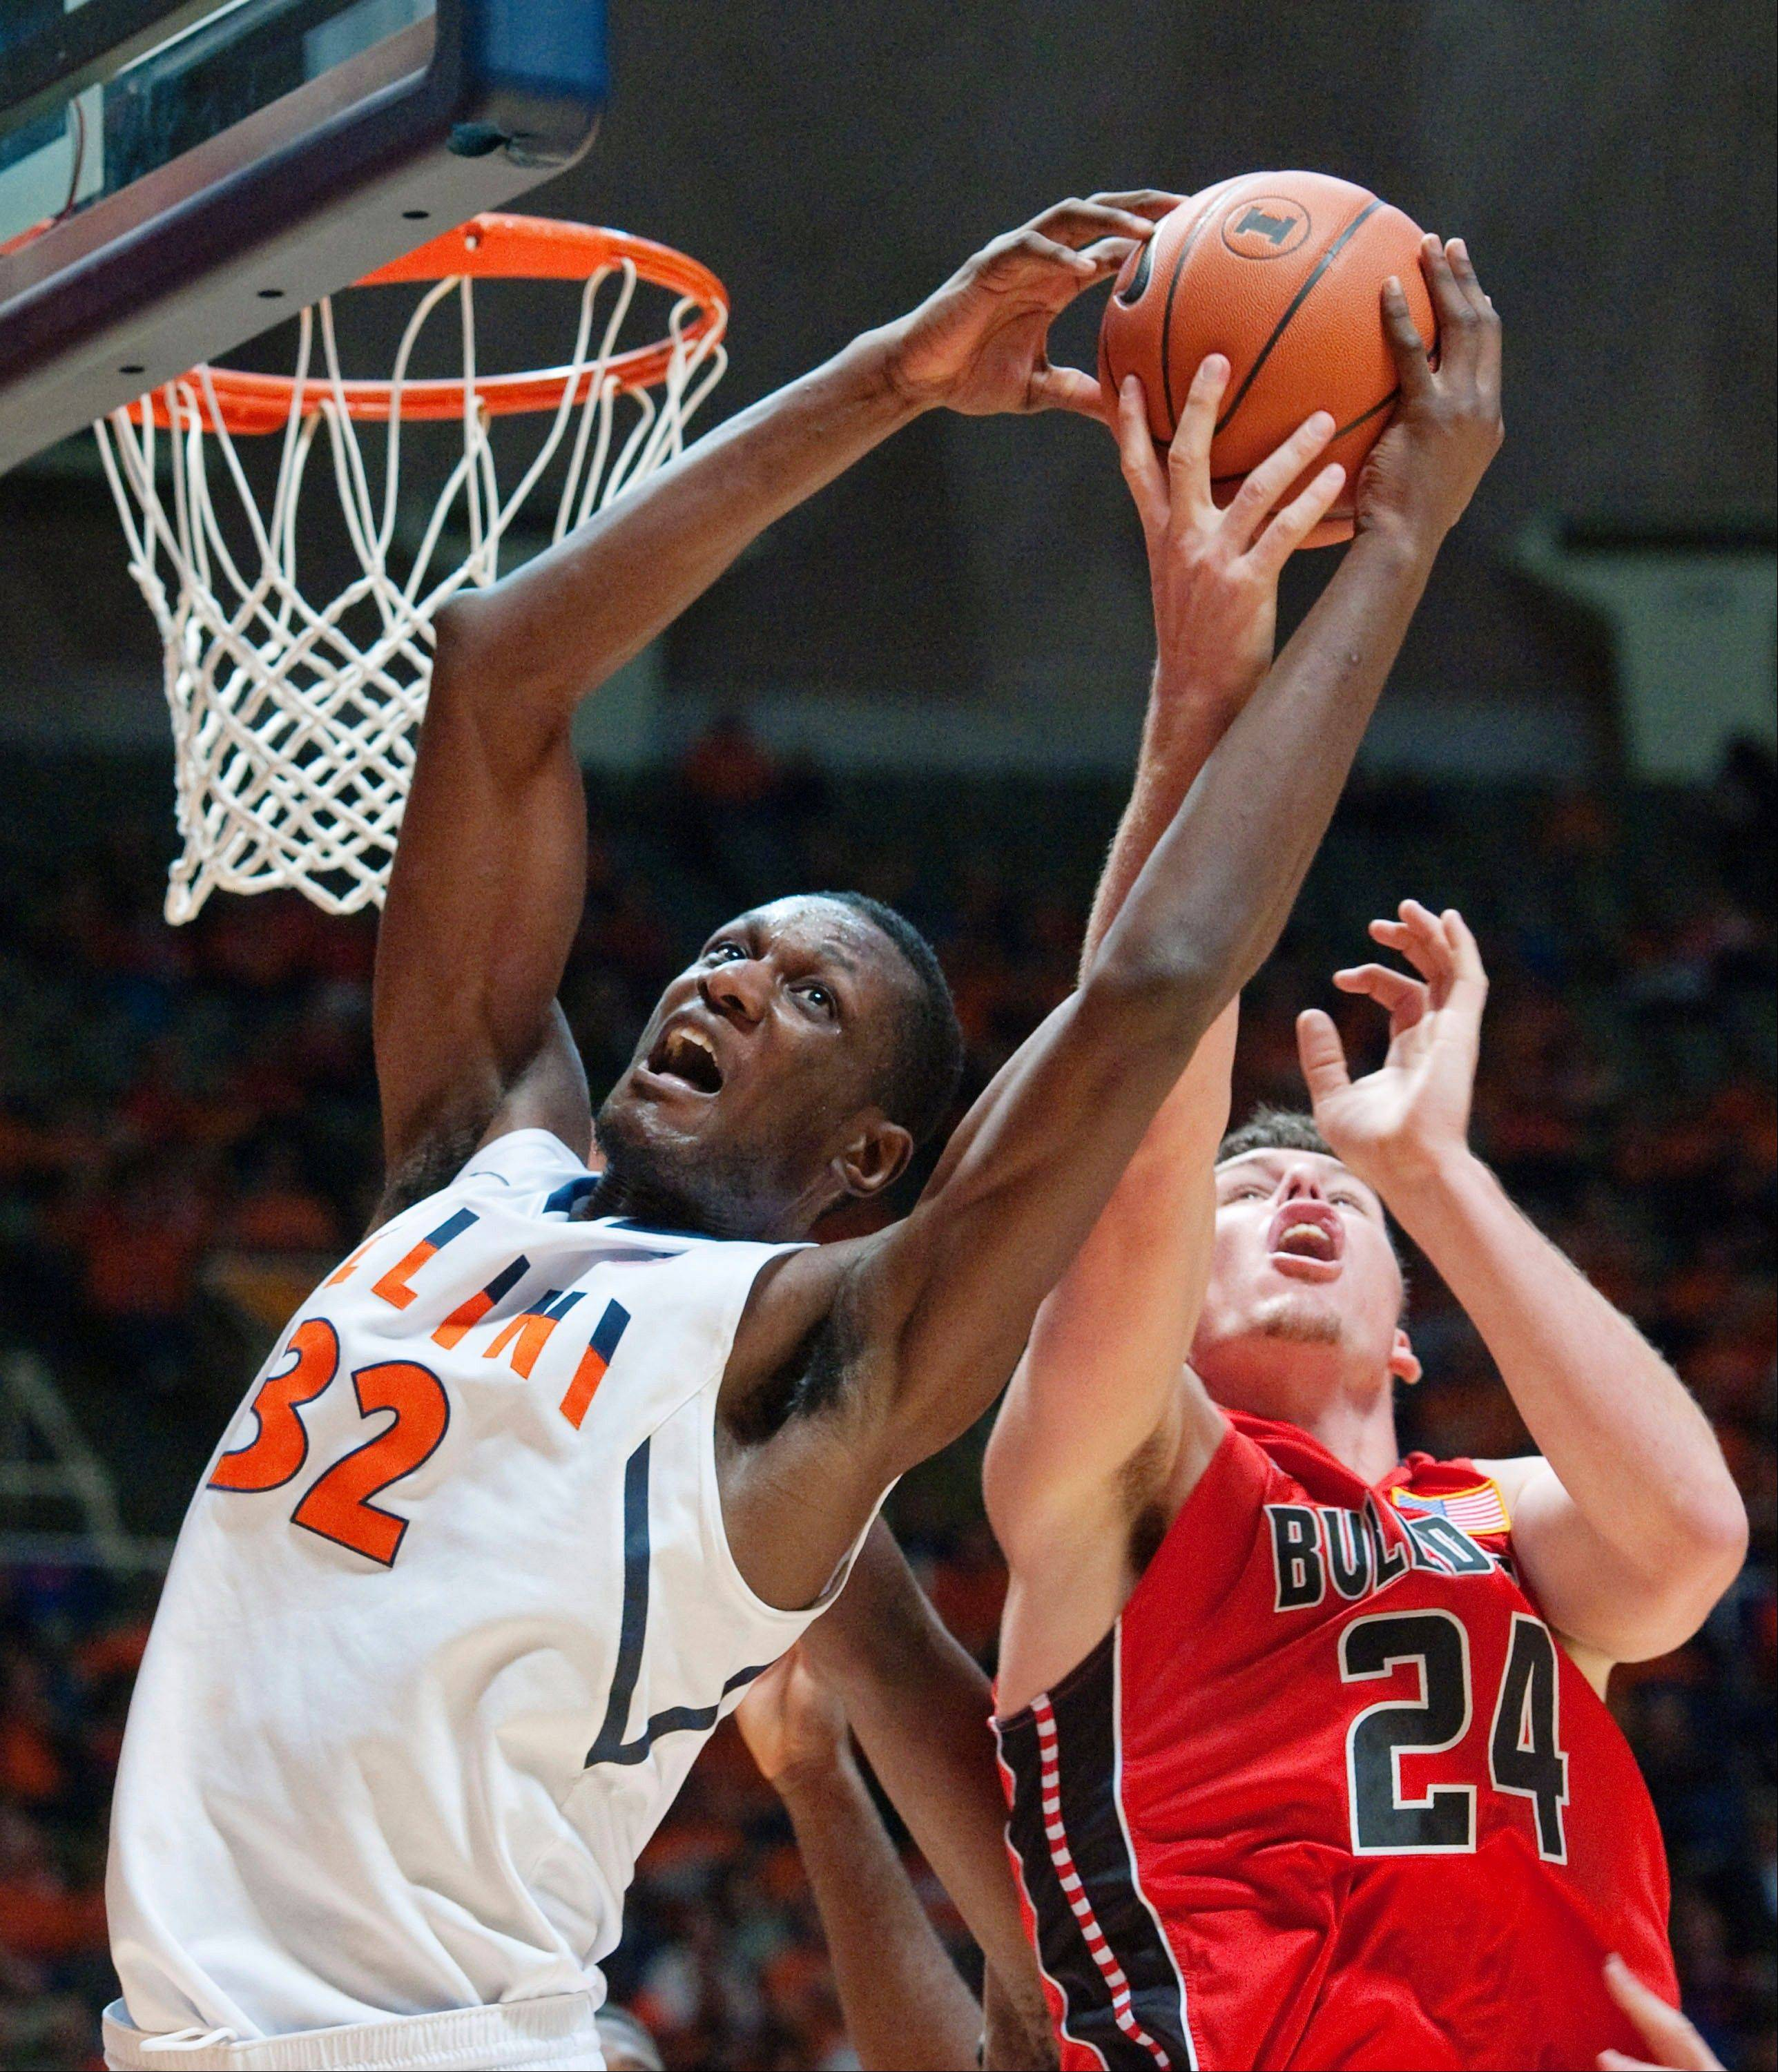 Illinois center Nnanna Egwu (32) and Gardner-Webb's Kevin Hartley (24) fight for a rebound in Champaign on Sunday. Illinois squeaked by with a 63-62 win and is ranked No. 22 by The Associated Press.